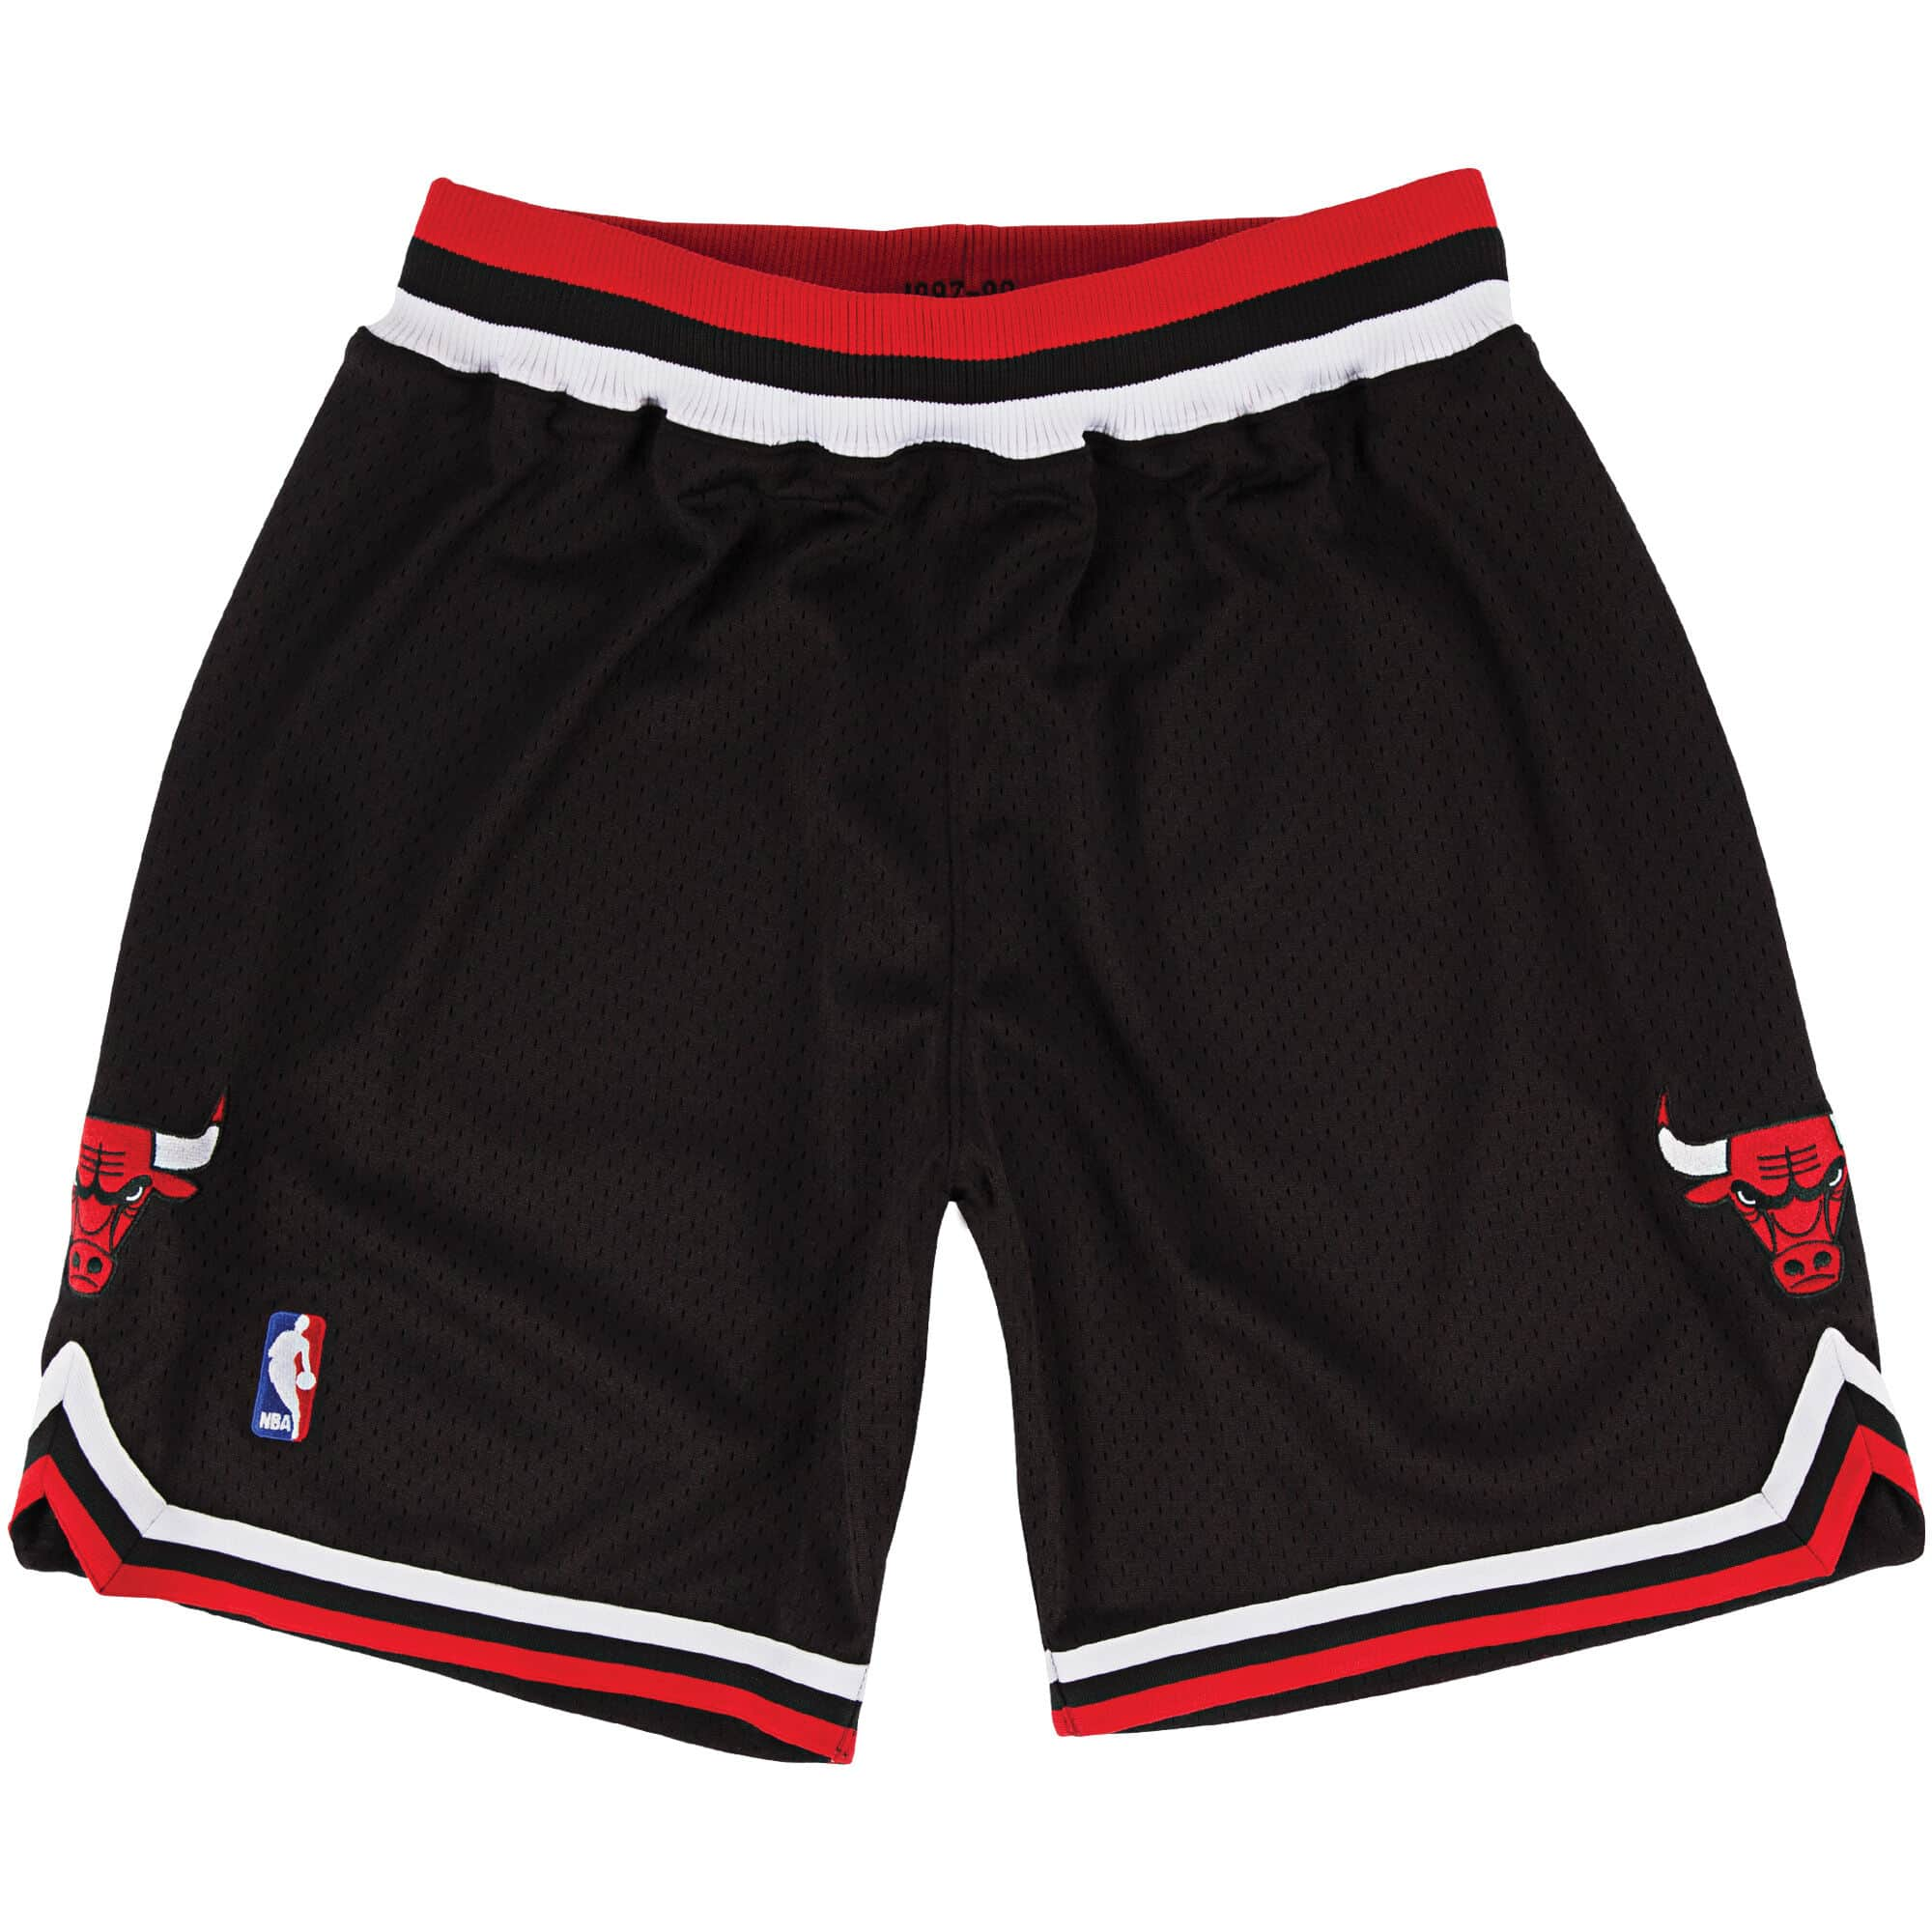 Authentic Shorts Chicago Bulls Alternate 1997-98